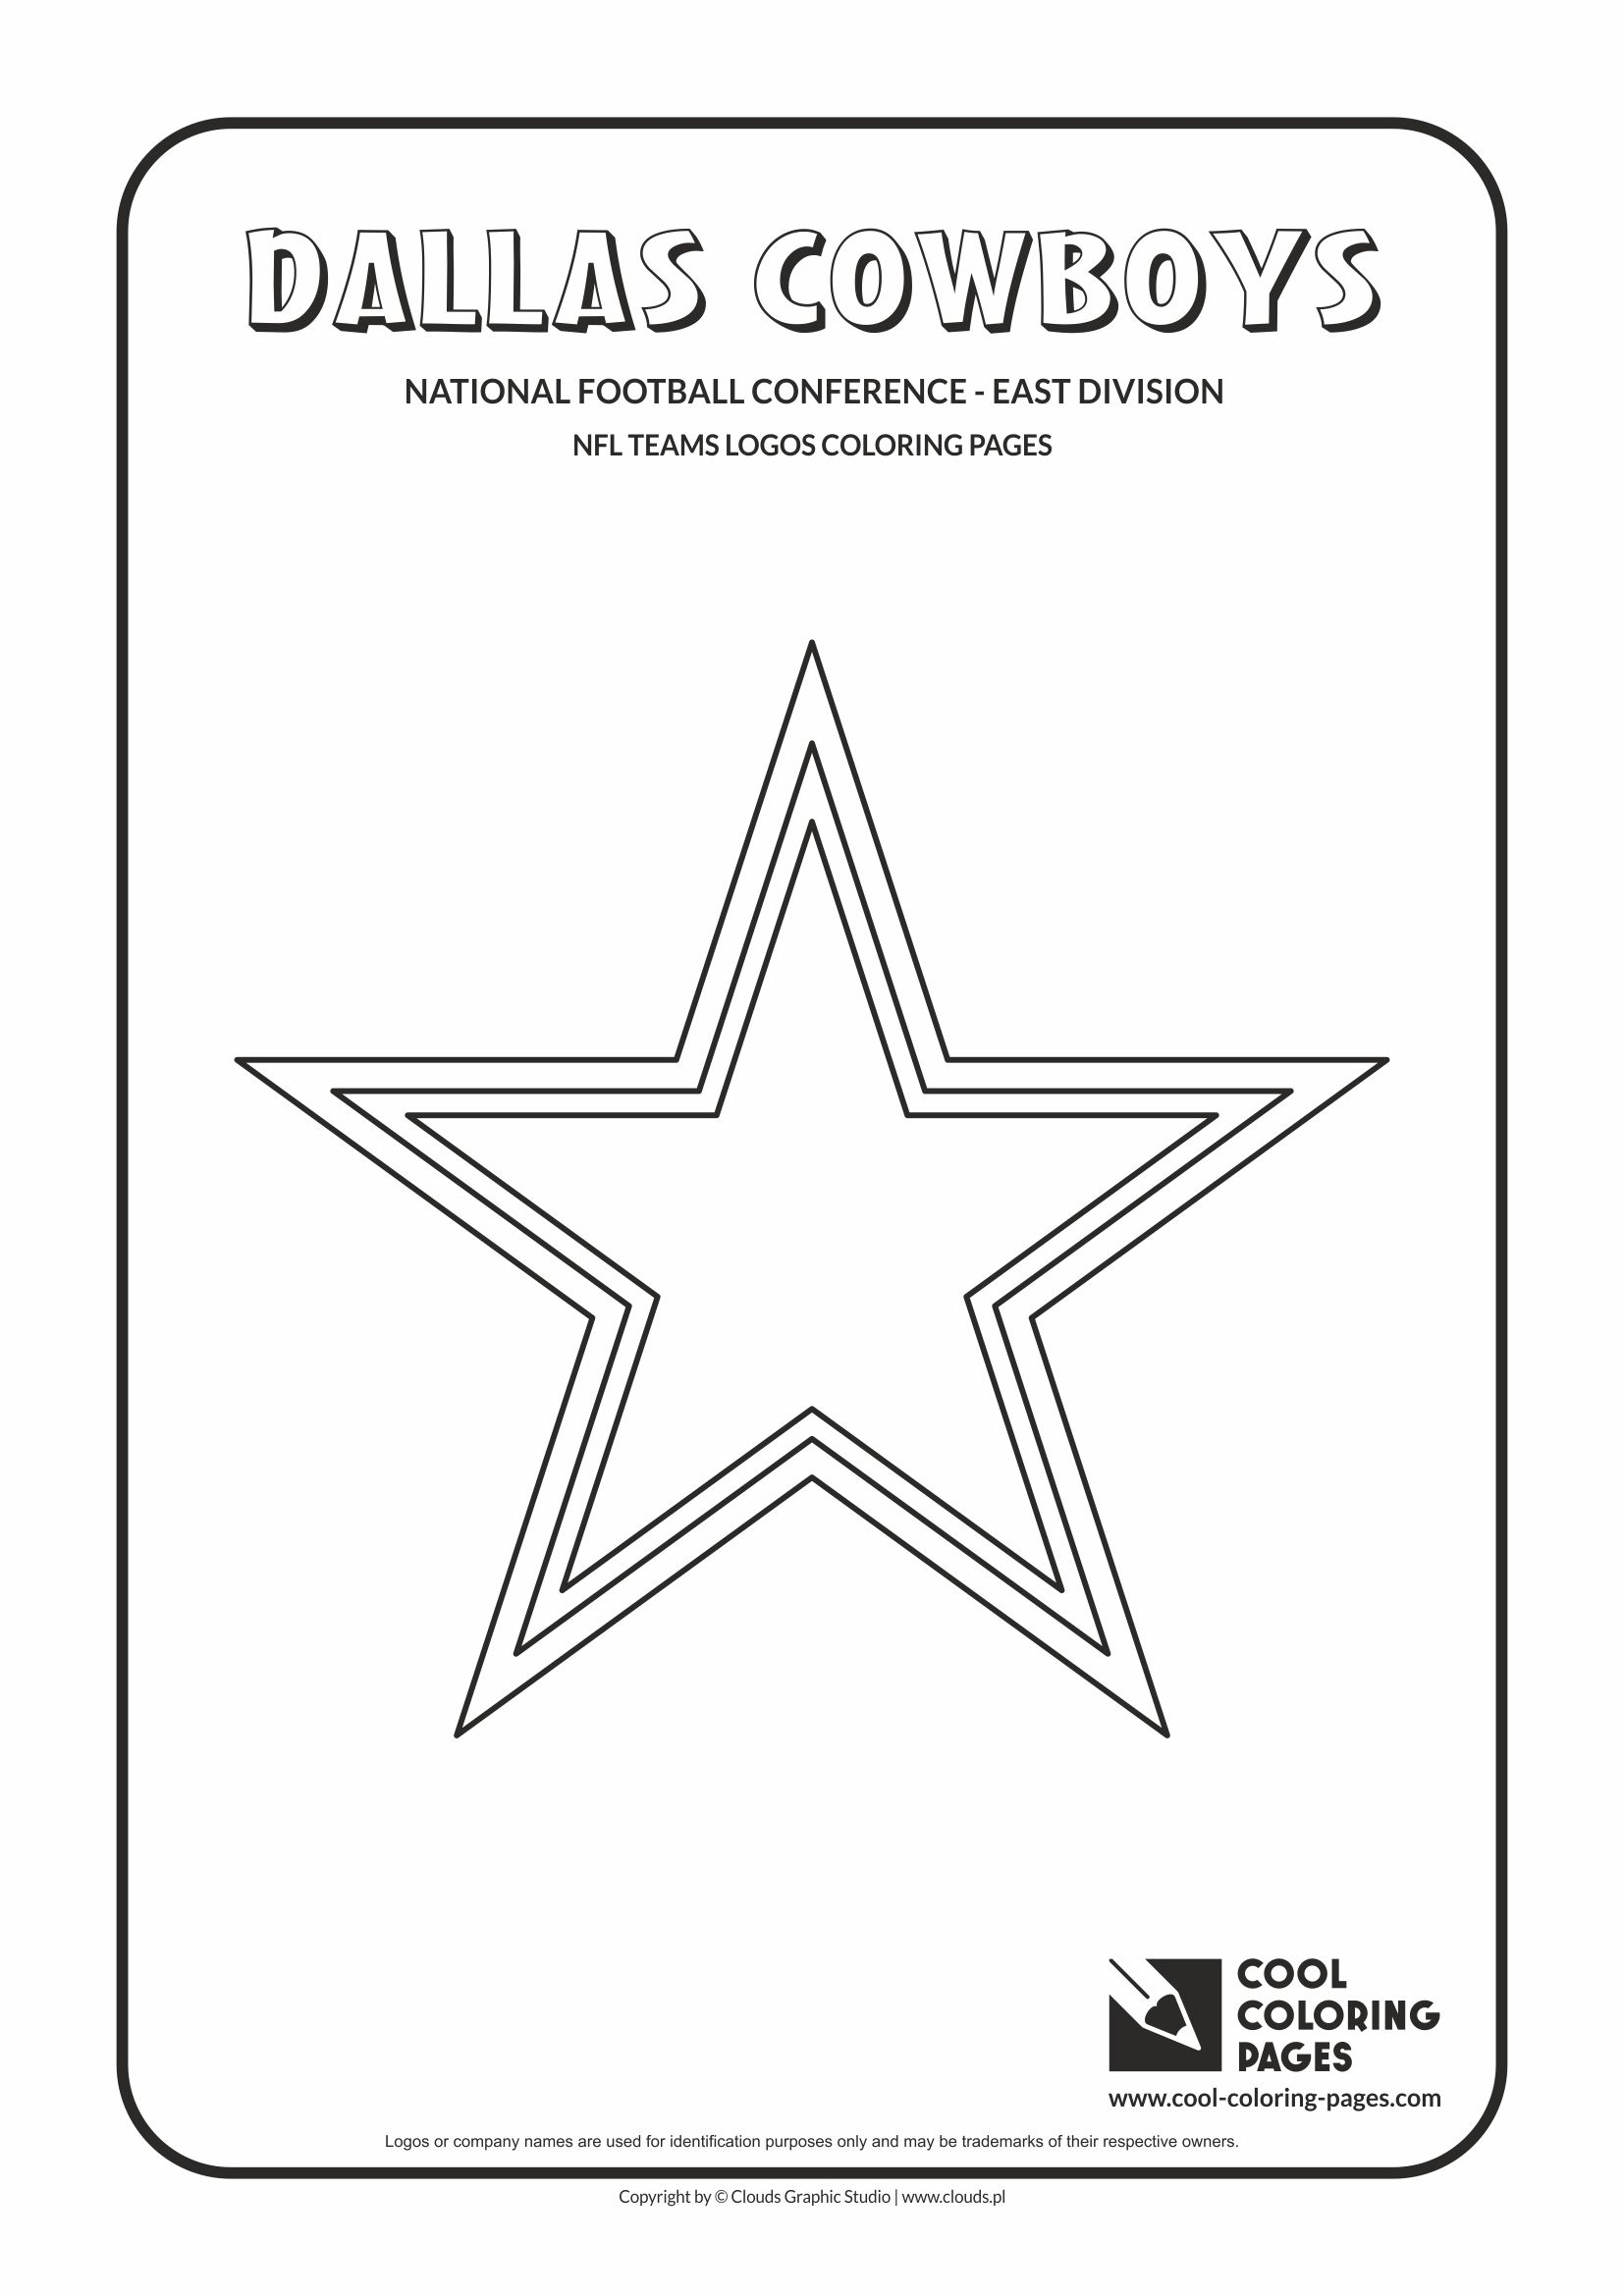 coloring pages nfl - Nfl Football Logos Coloring Pages